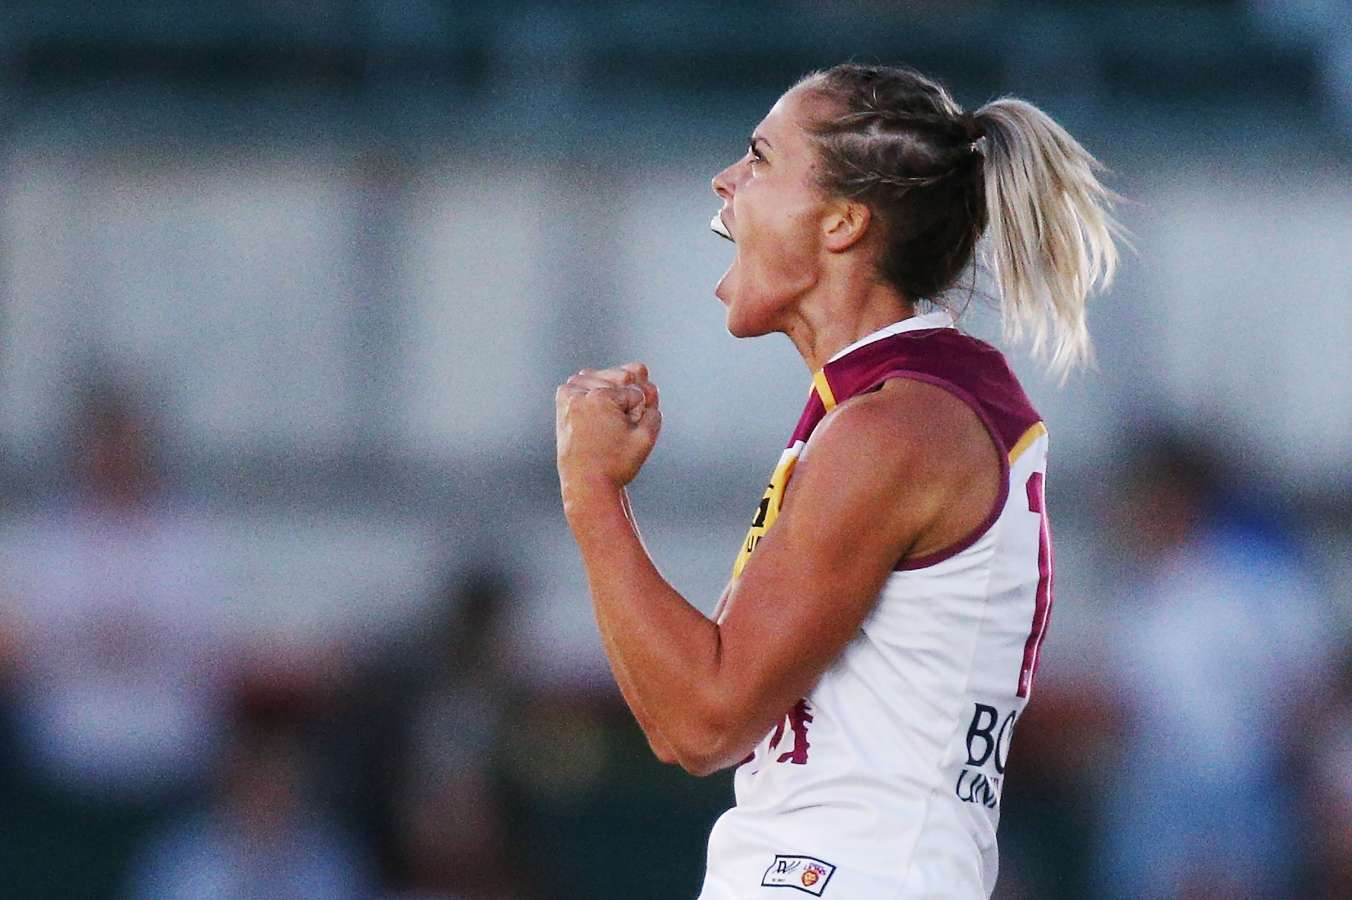 AFLW Round 5: Betting Preview